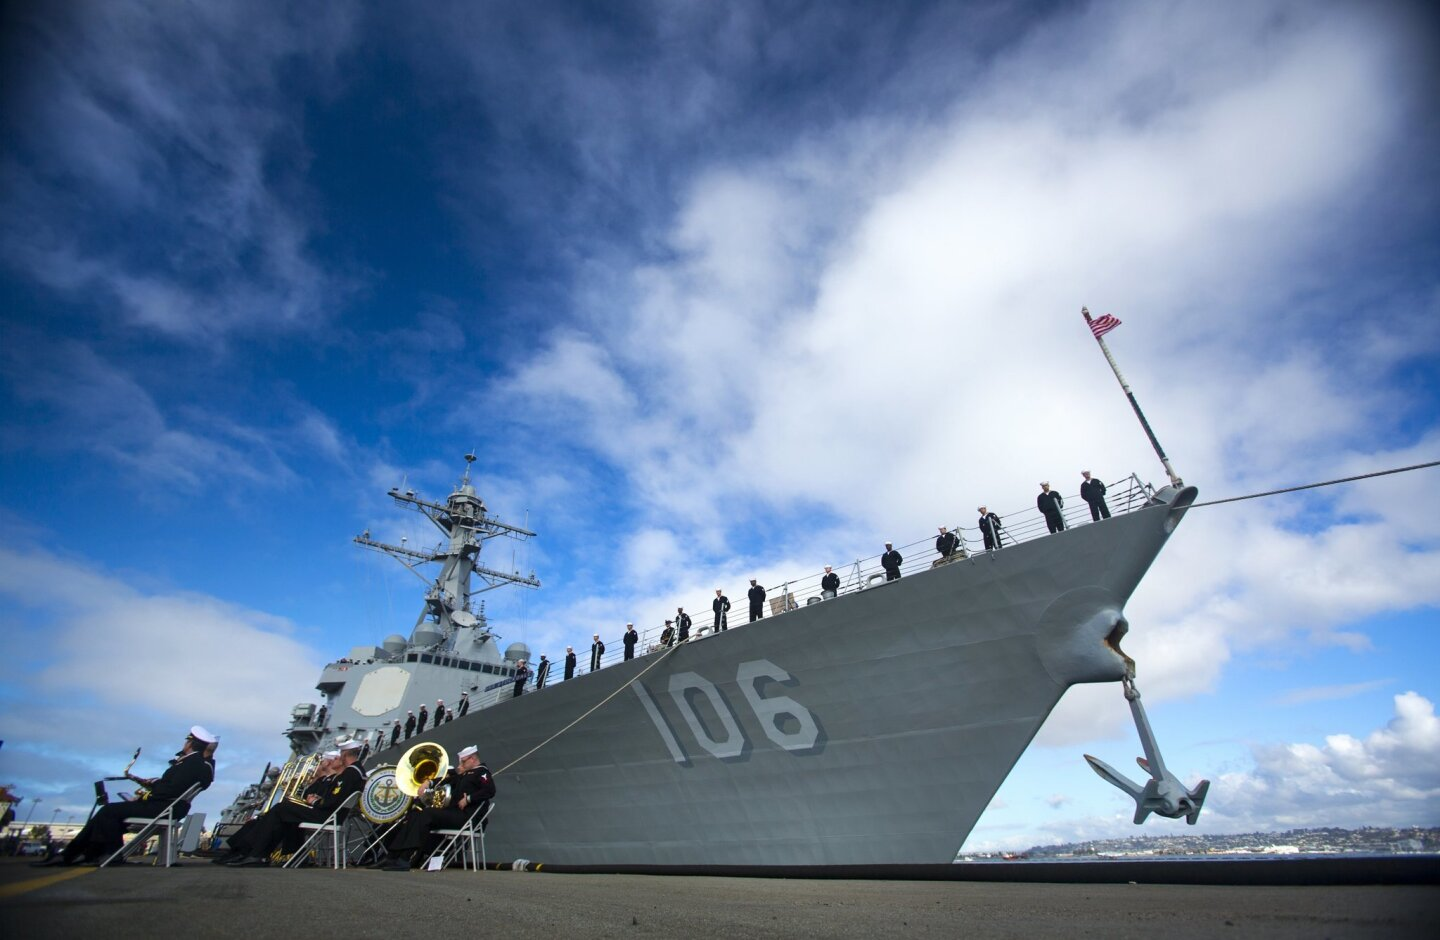 The guided missile destroyer USS Stockdale prepares to leave North Island Naval Air Station on a seven-month deployment as part of the USS John C. Stennis Carrier Strike Group, becoming the first ship in the U.S. Navy to regularly run on biofuel.